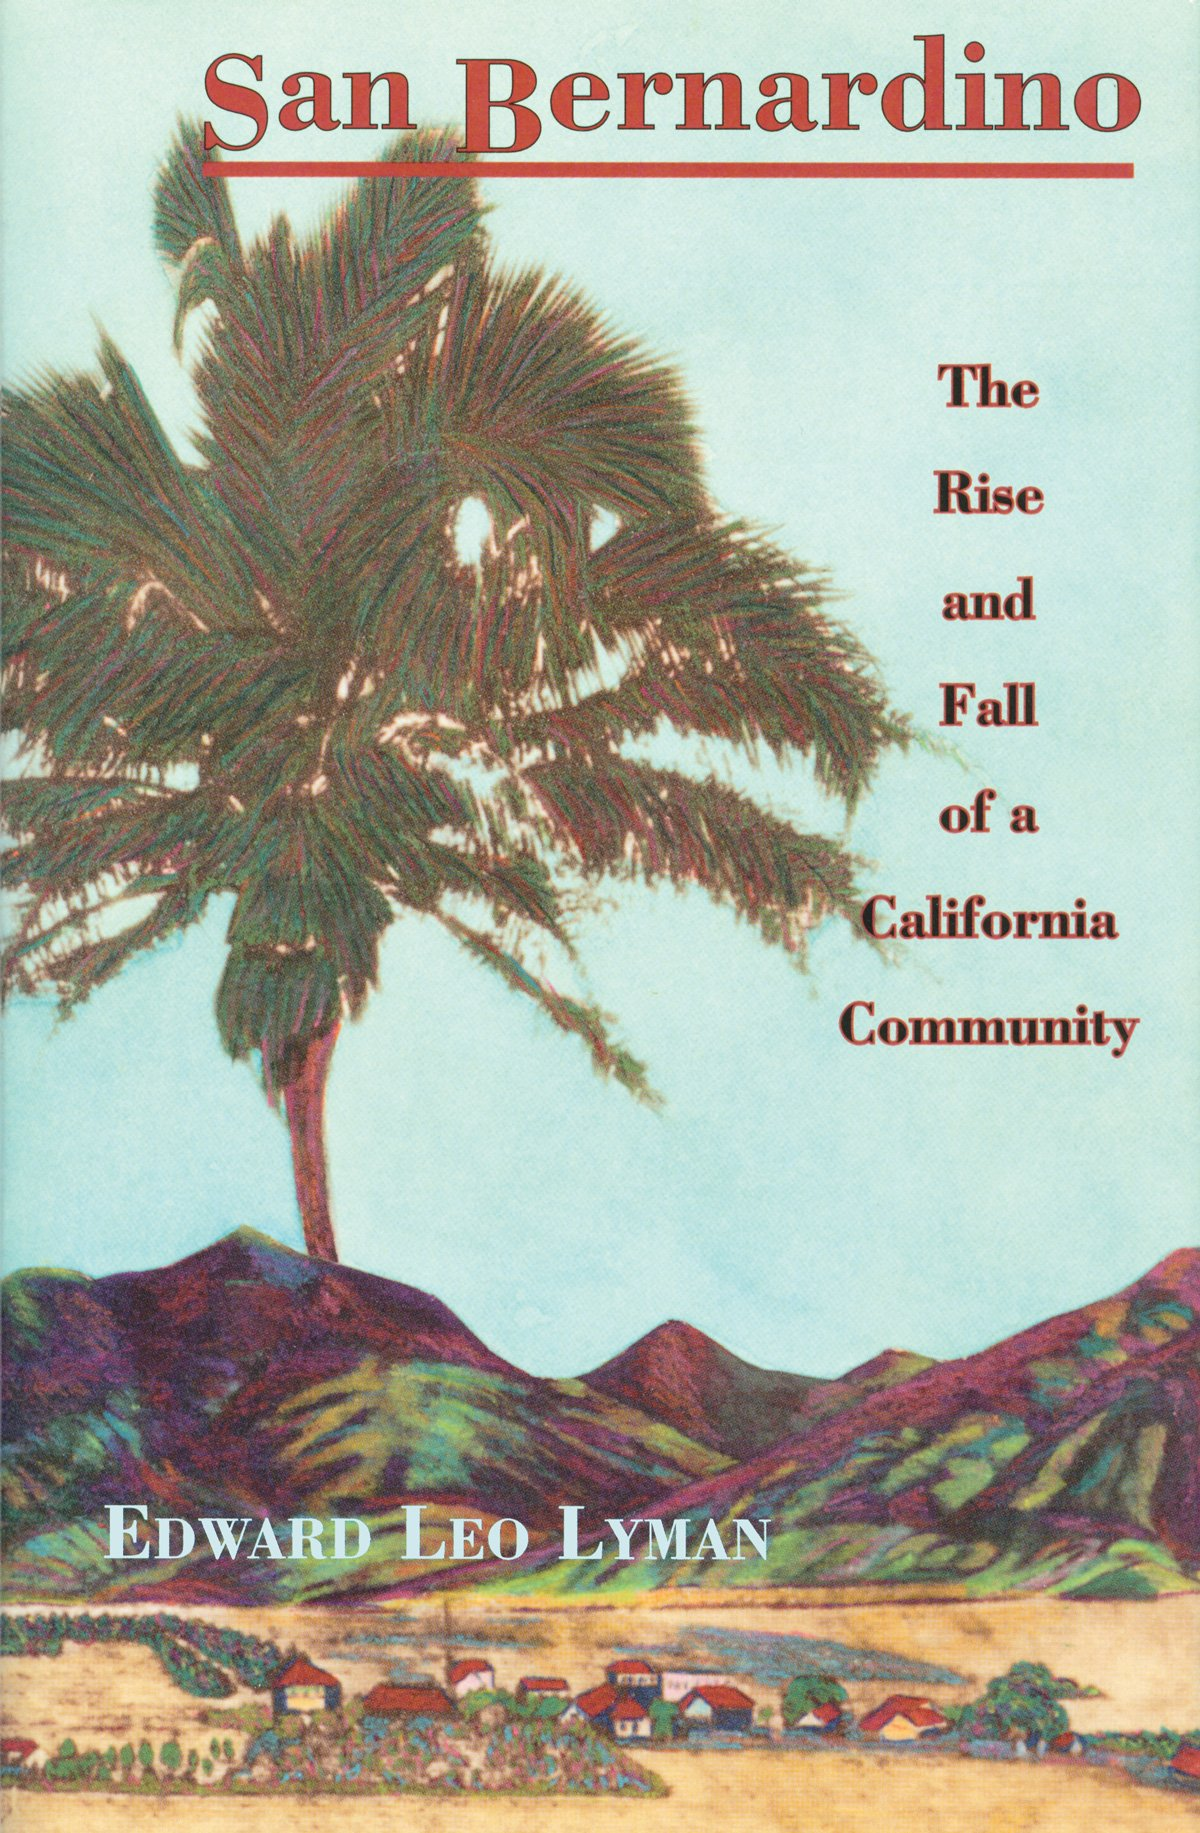 Image for SAN BERNARDINO - The Rise and Fall of a California Community